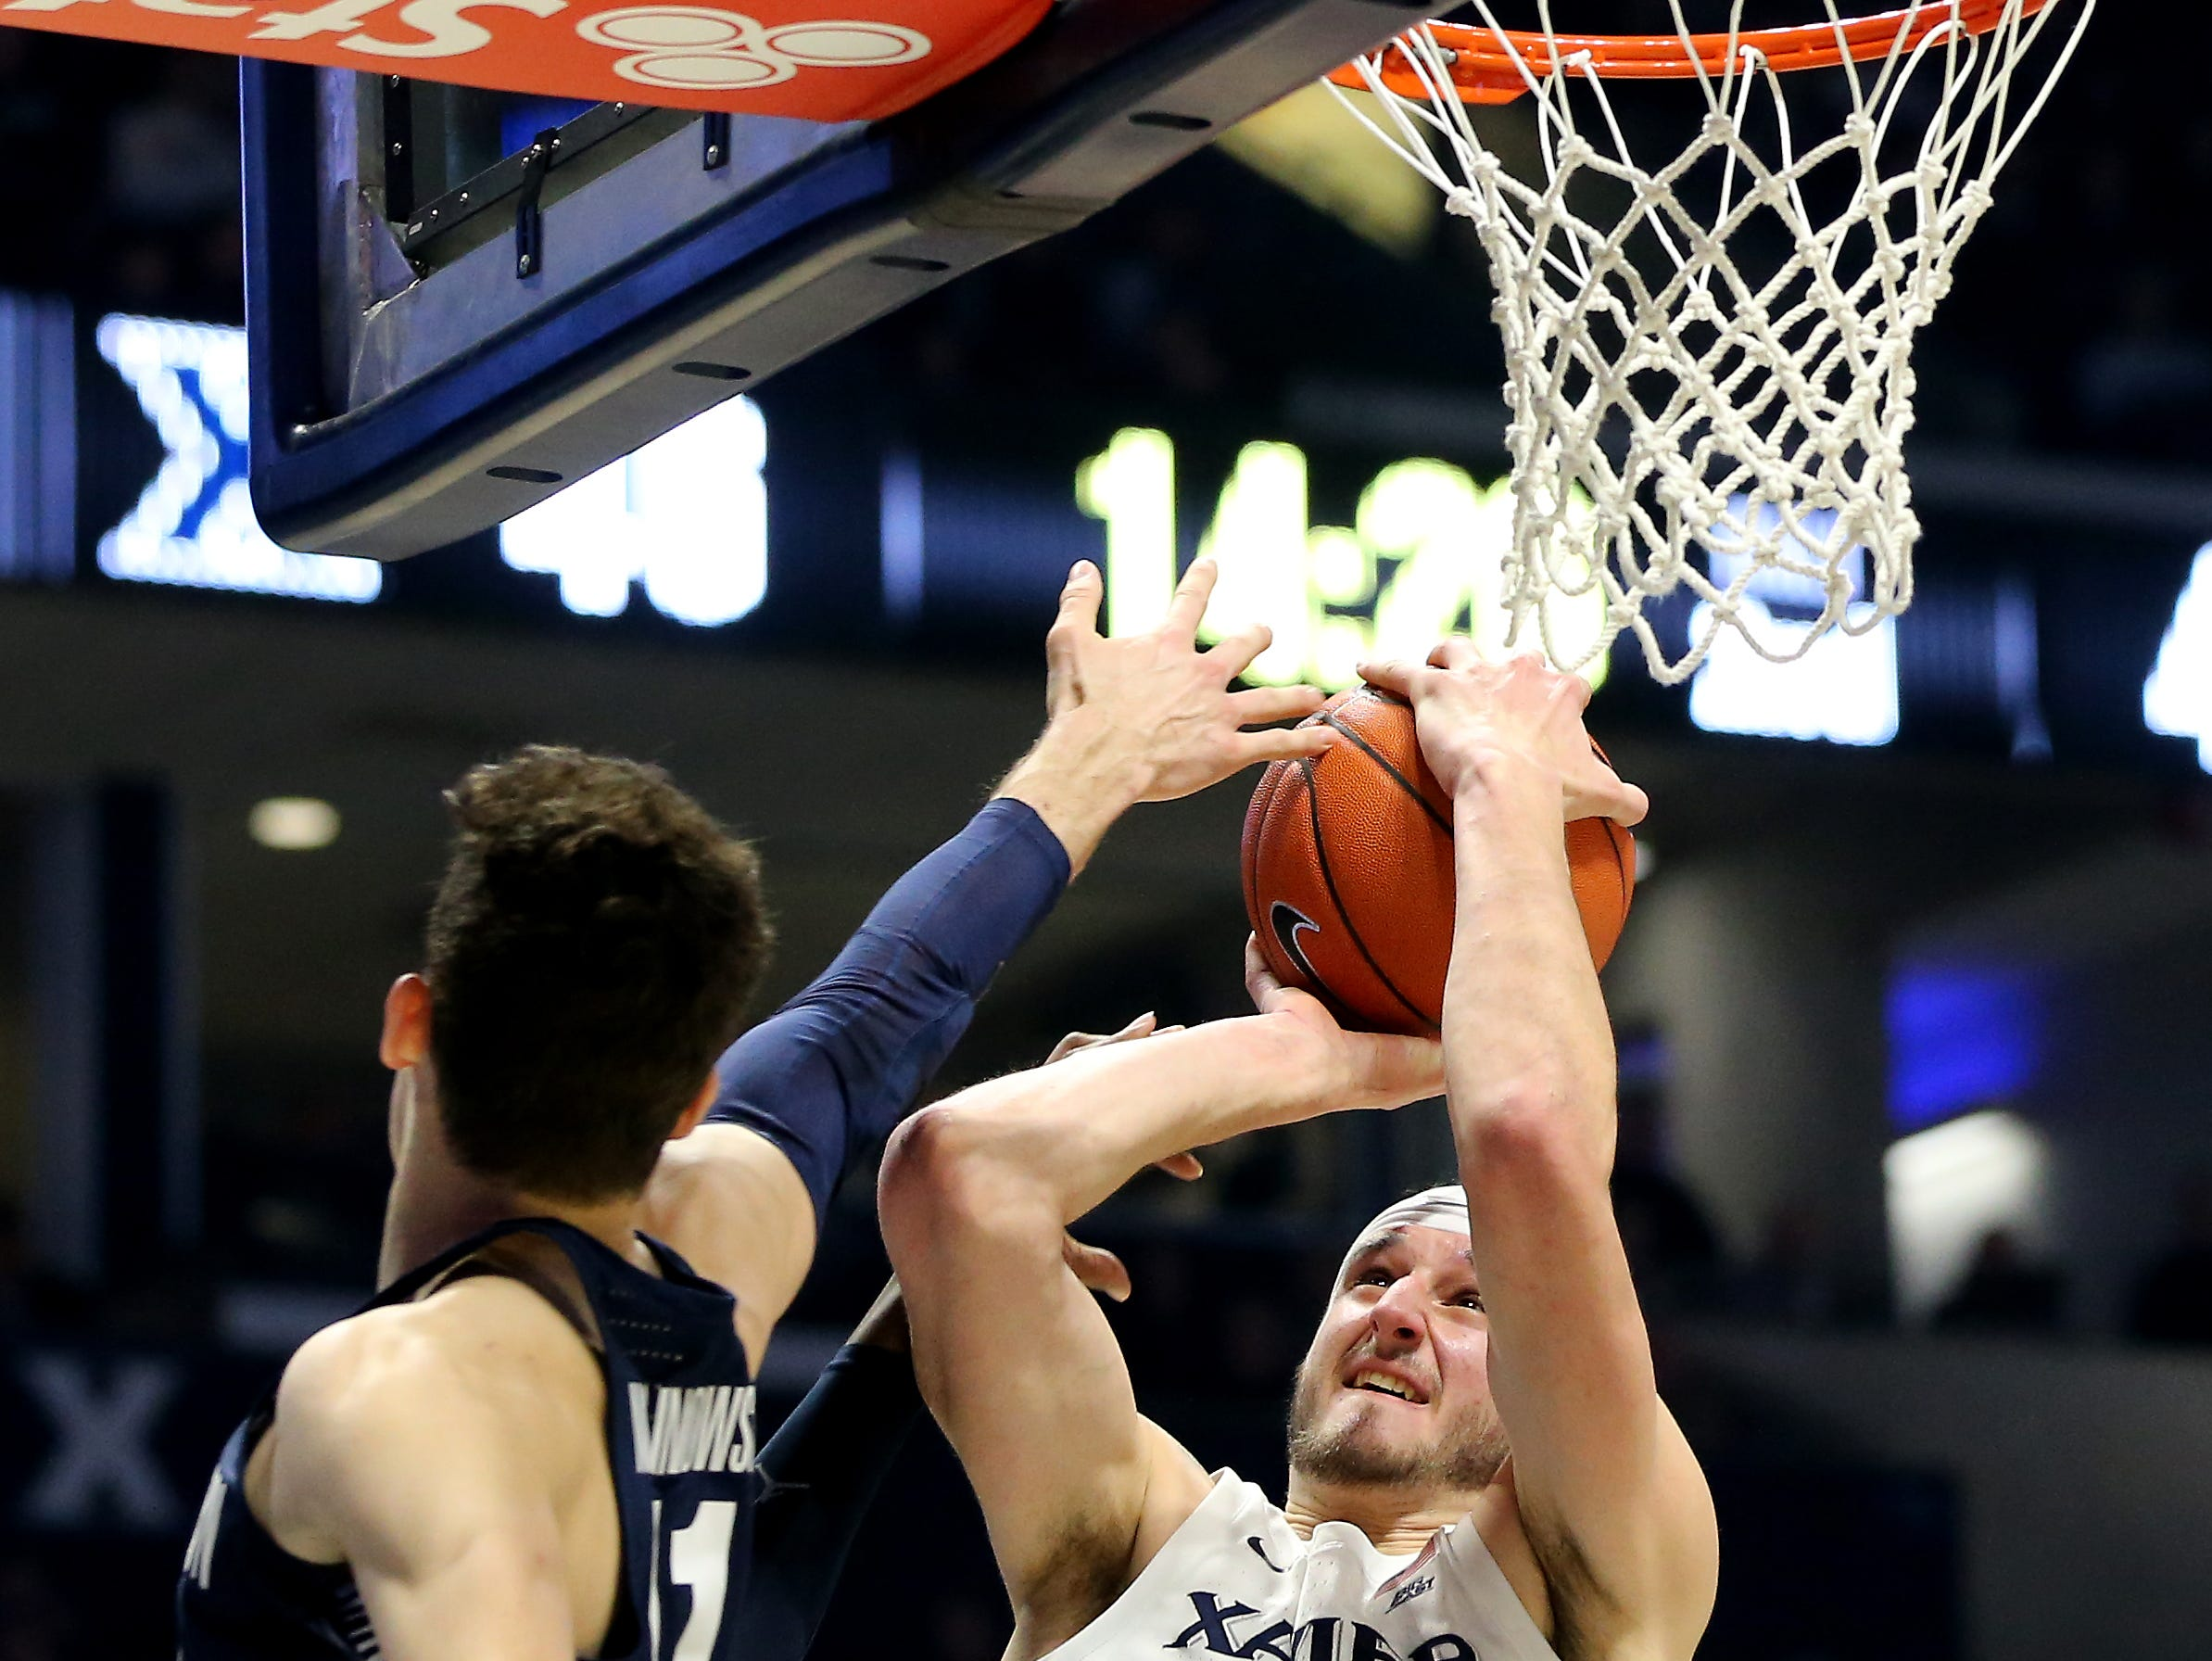 Xavier Musketeers forward Zach Hankins (35) goes for a shot as Georgetown Hoyas guard Greg Malinowski (11) defends in the second half of an NCAA basketball game, Wednesday, Jan. 9, 2019, at the Cintas Center in Cincinnati. Xavier Musketeers won 81-75 against the Georgetown Hoyas.